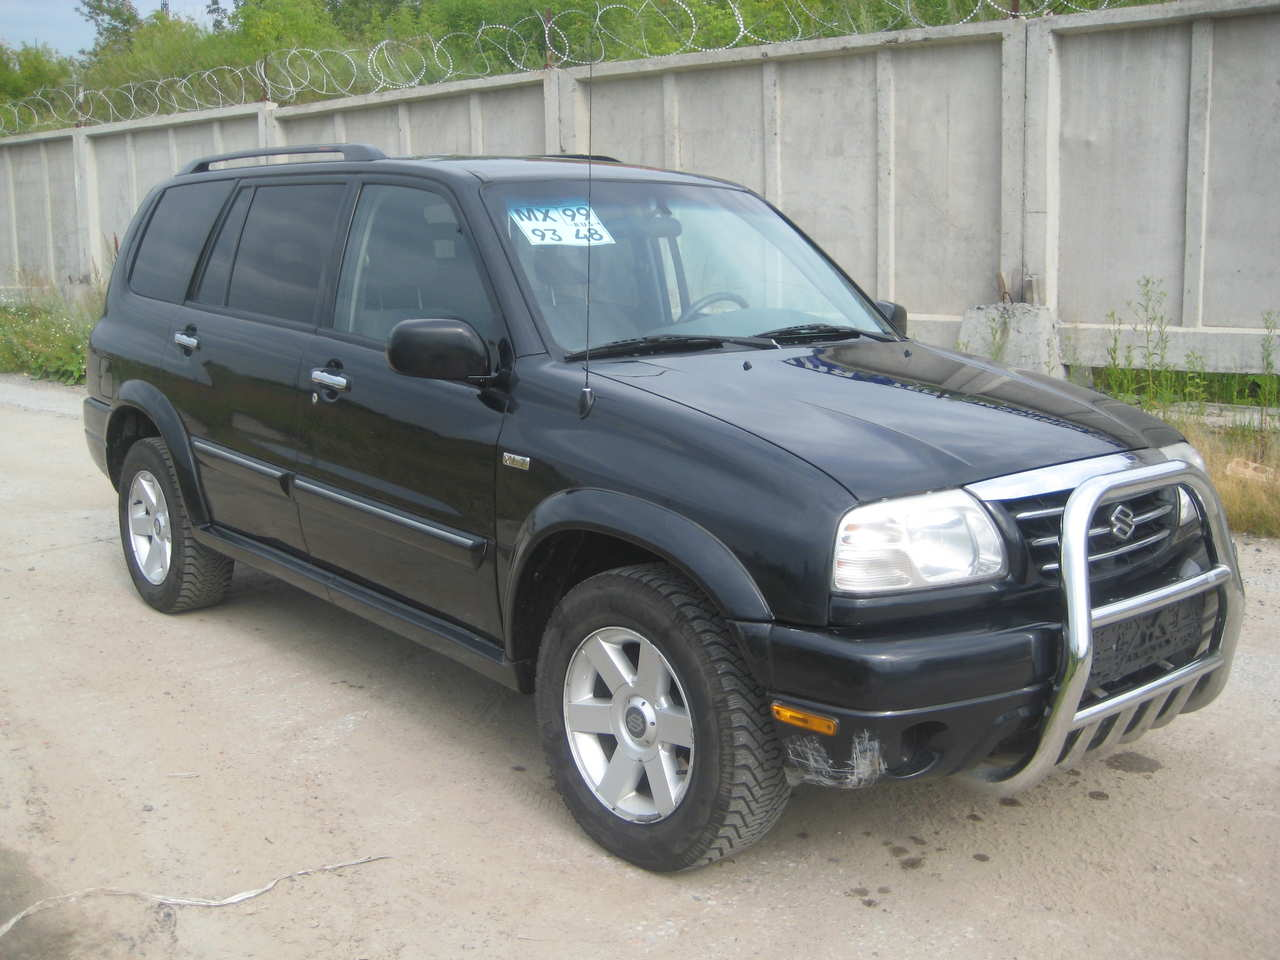 used 2000 suzuki grand vitara xl 7 photos 2700cc. Black Bedroom Furniture Sets. Home Design Ideas